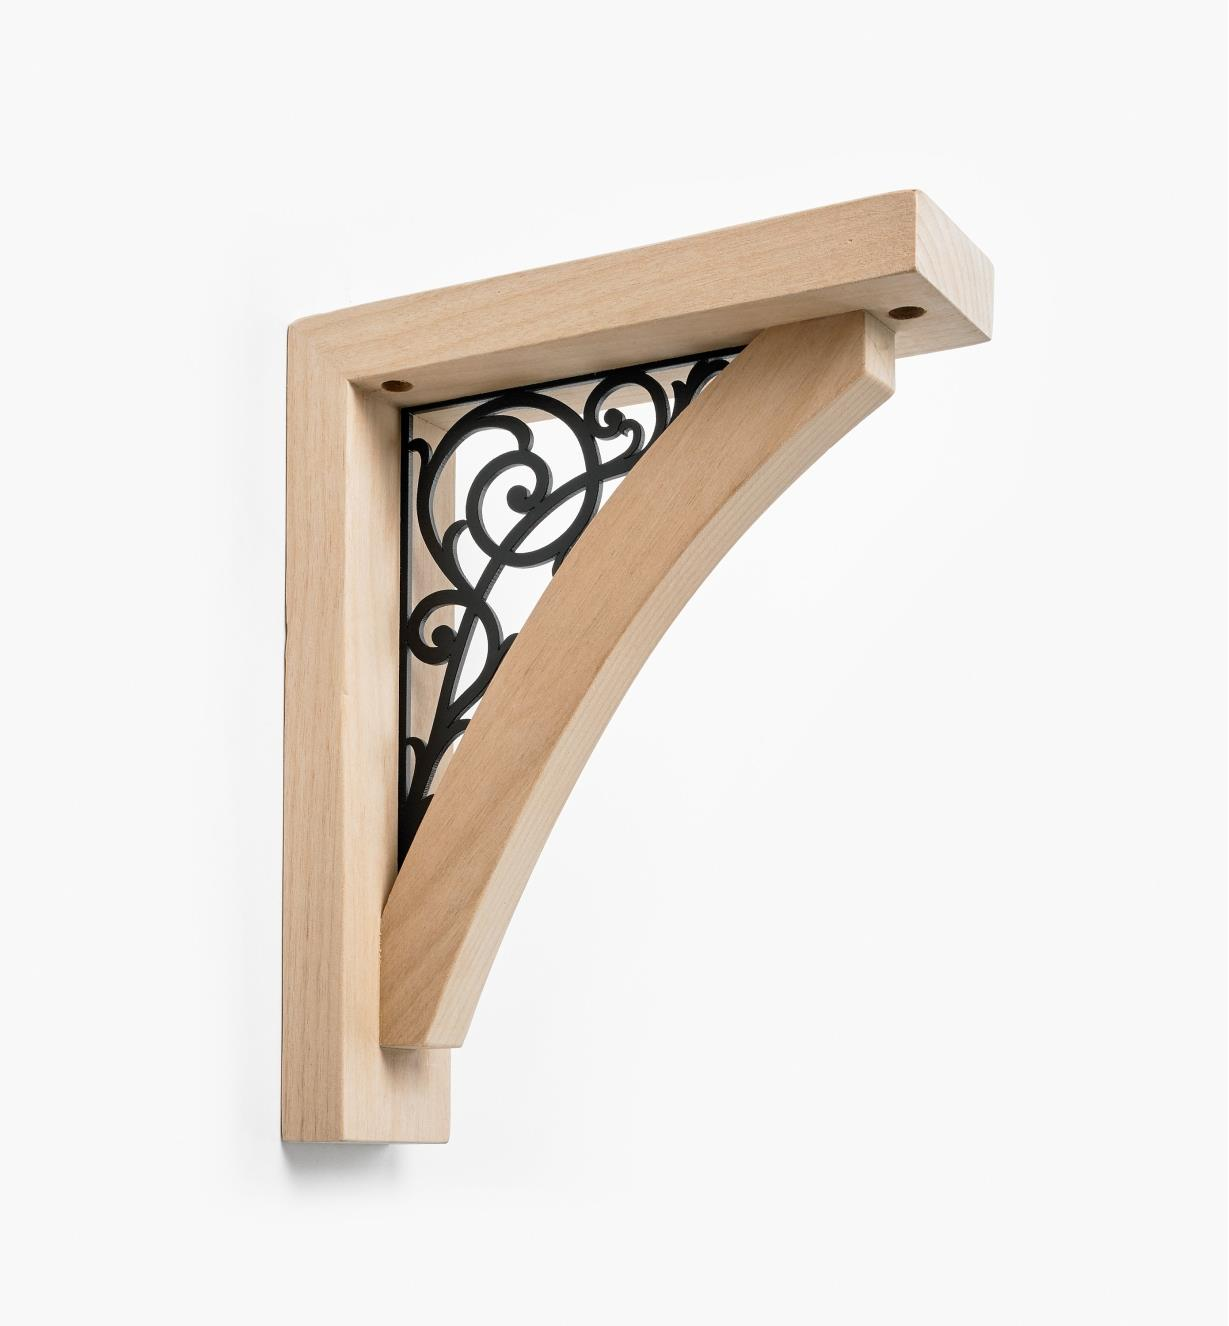 00S0732 - Scroll Wooden Shelf Bracket